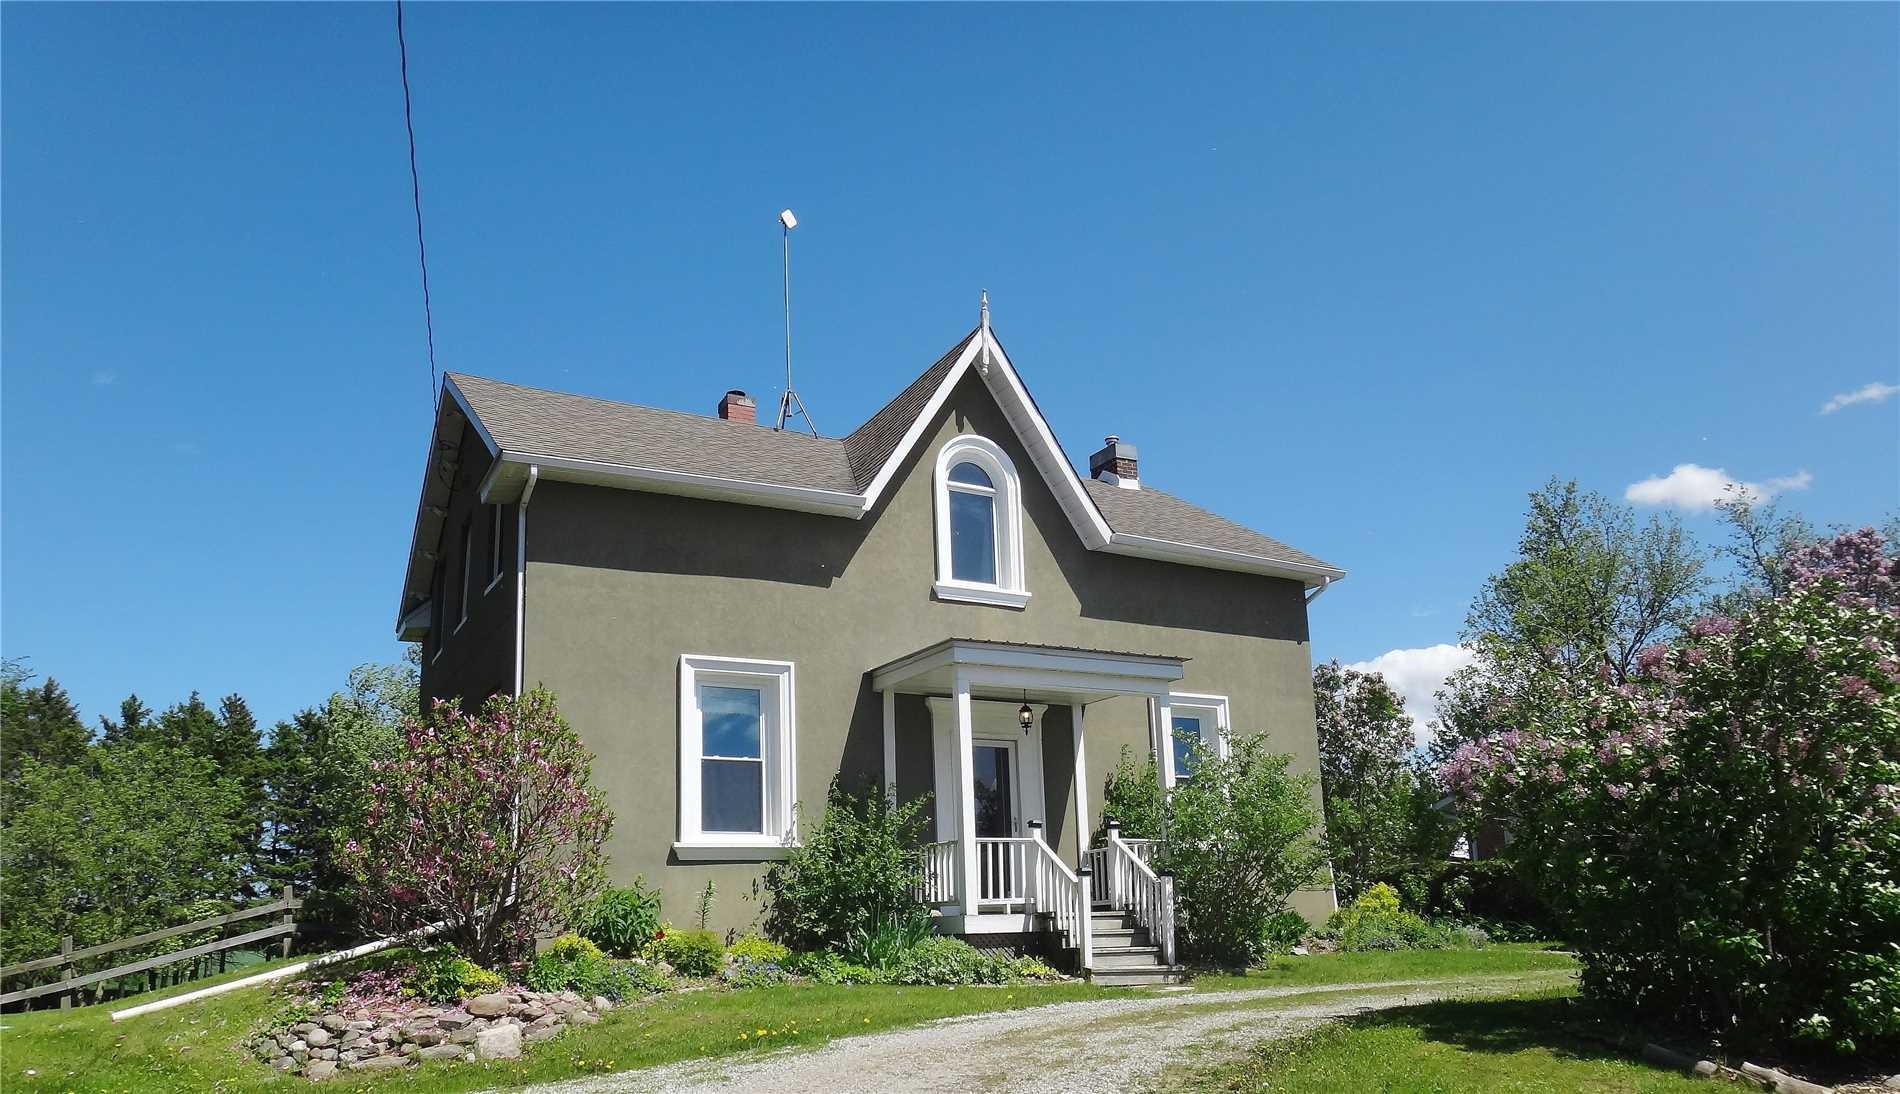 Enjoy Country Living, Beautiful Locatation In The Community Of Ivy, On 1.25 Acres, Only 10 Minutes From The Conveniences Of Barrie. This Home Has Century Charm With A Modernized Open Concept Kitchen, Spacious Living Areas With A Separate Dining Room, Family Room And Sitting Room, Additional Space Great For A Home Office Or Nanny Suite Overlooking The Backyard. 3 Bedrooms And Full Bath With A Double Vanity And Soaker Tub, Original Hardwood Flooring Throughout,